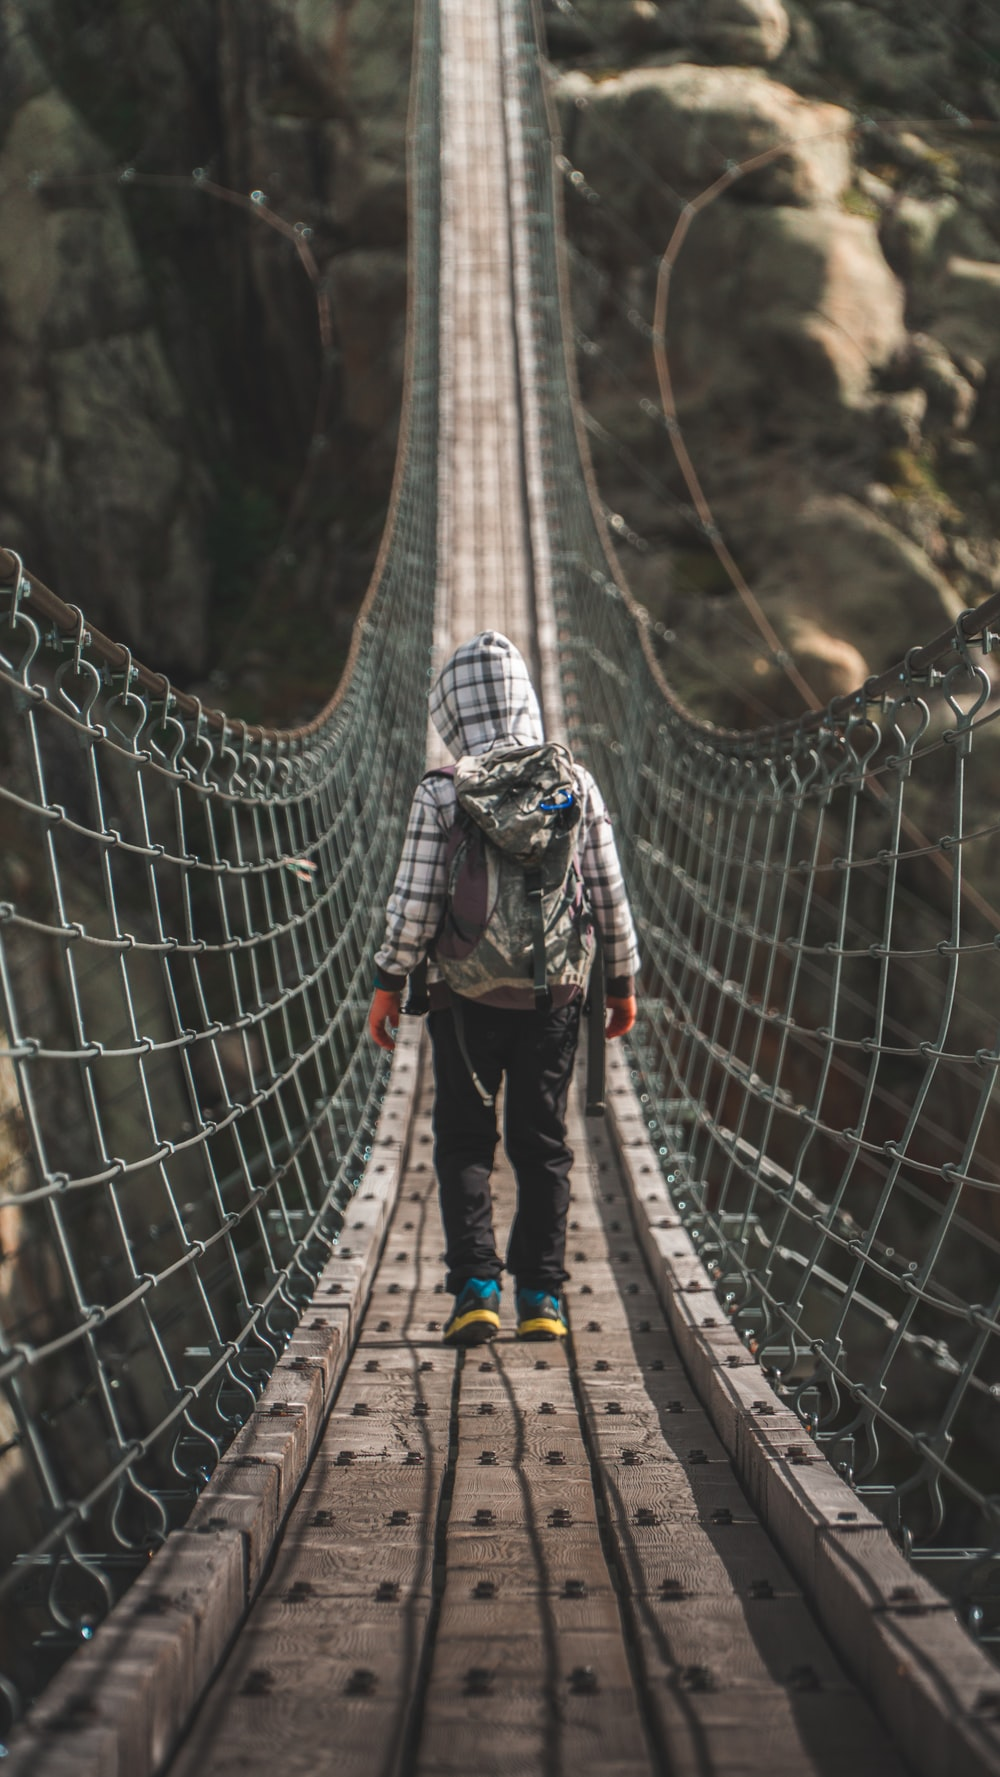 unknown person standing on gray hanging bridge